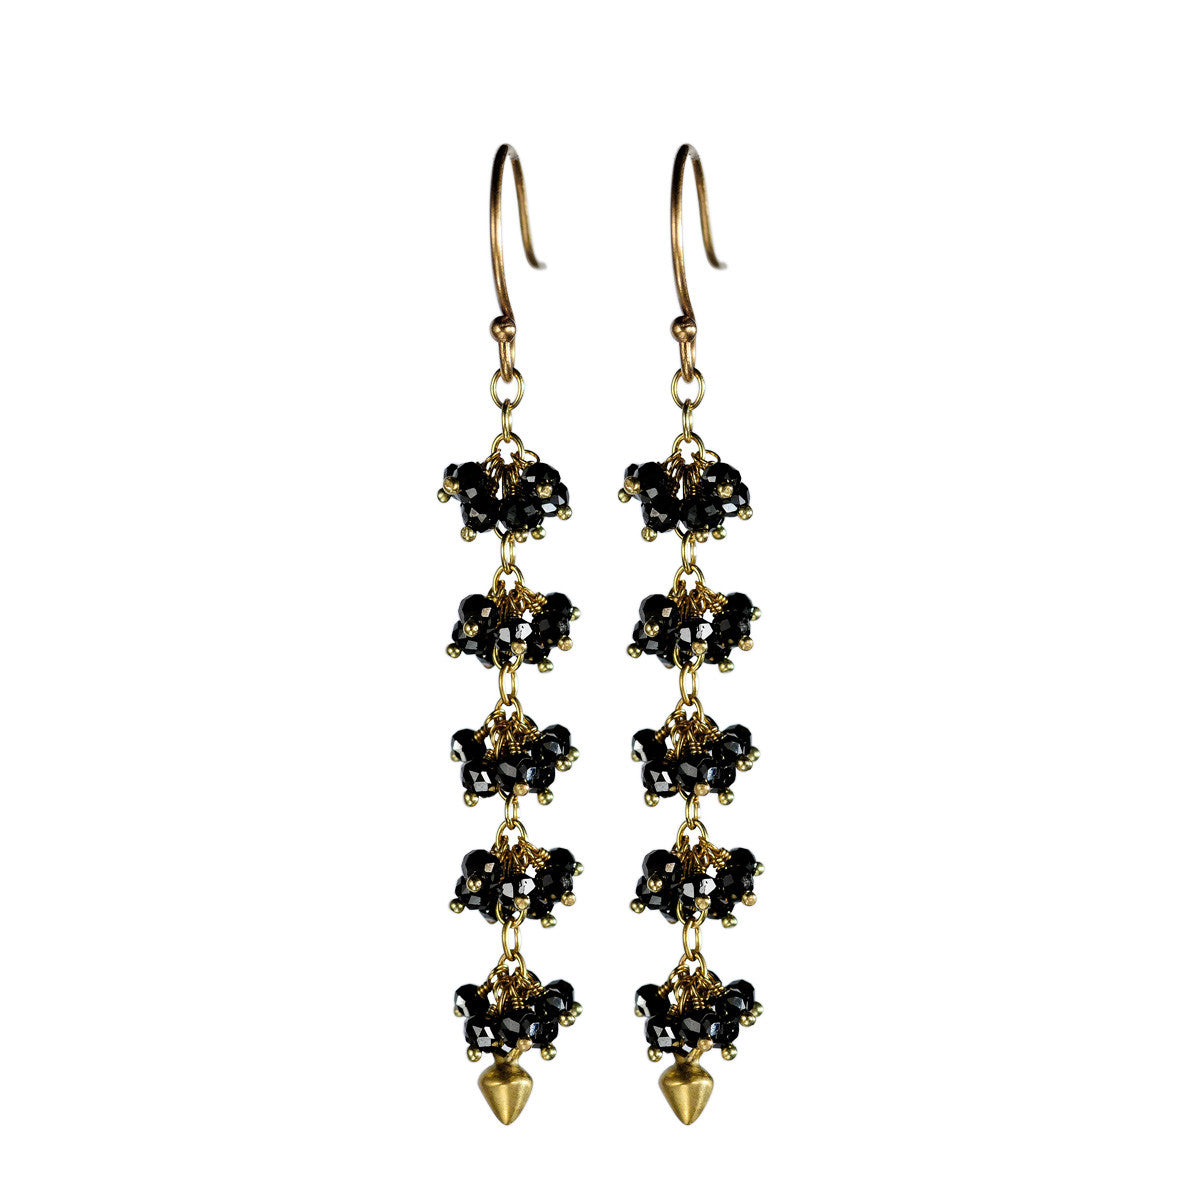 18K Gold 5 Beaded  Black Diamond Cluster Earrings with Lotus Buds